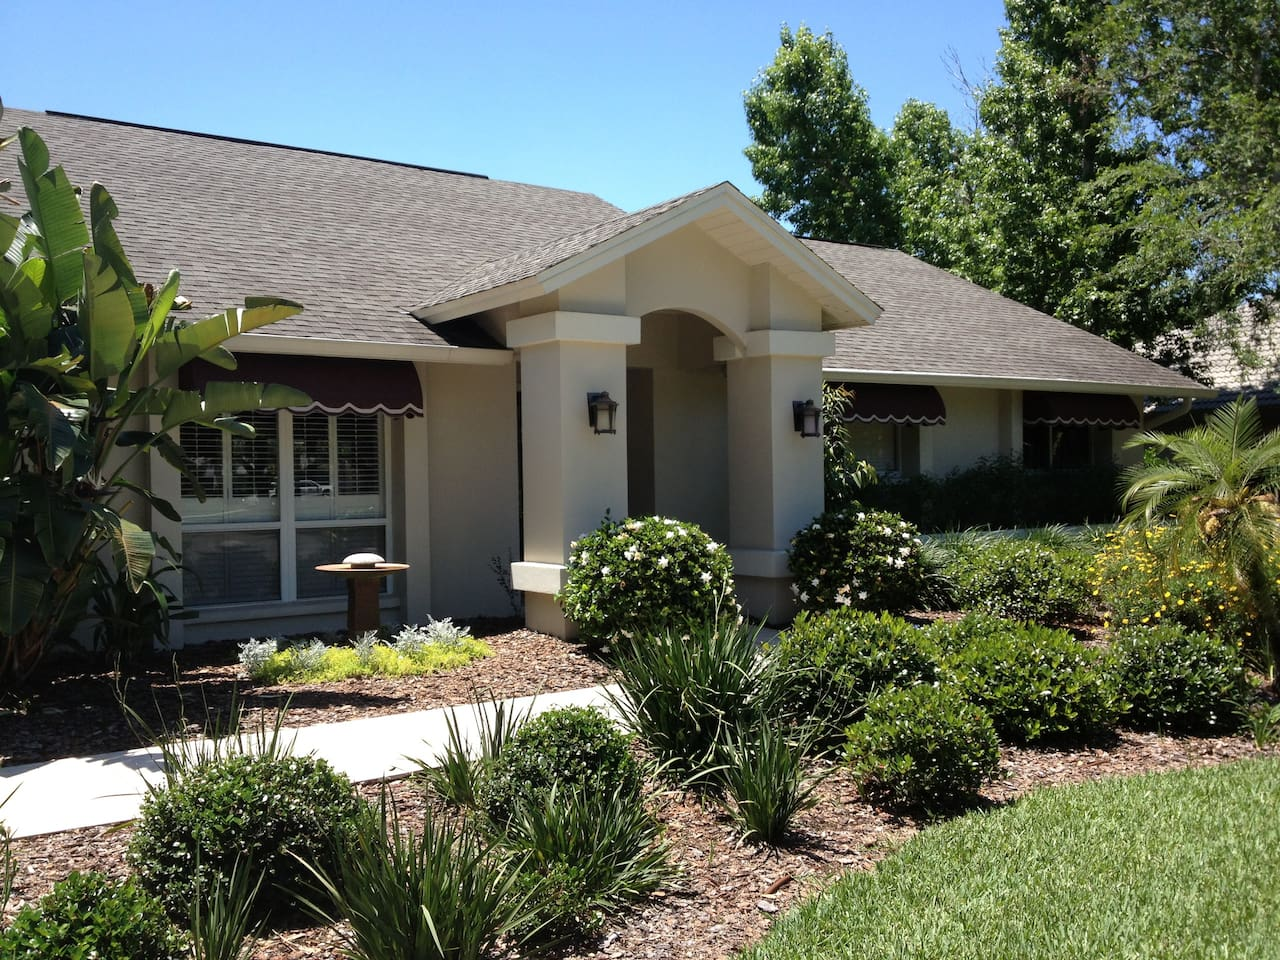 4 BR home not far from beaches, Disney, and near lots of golf